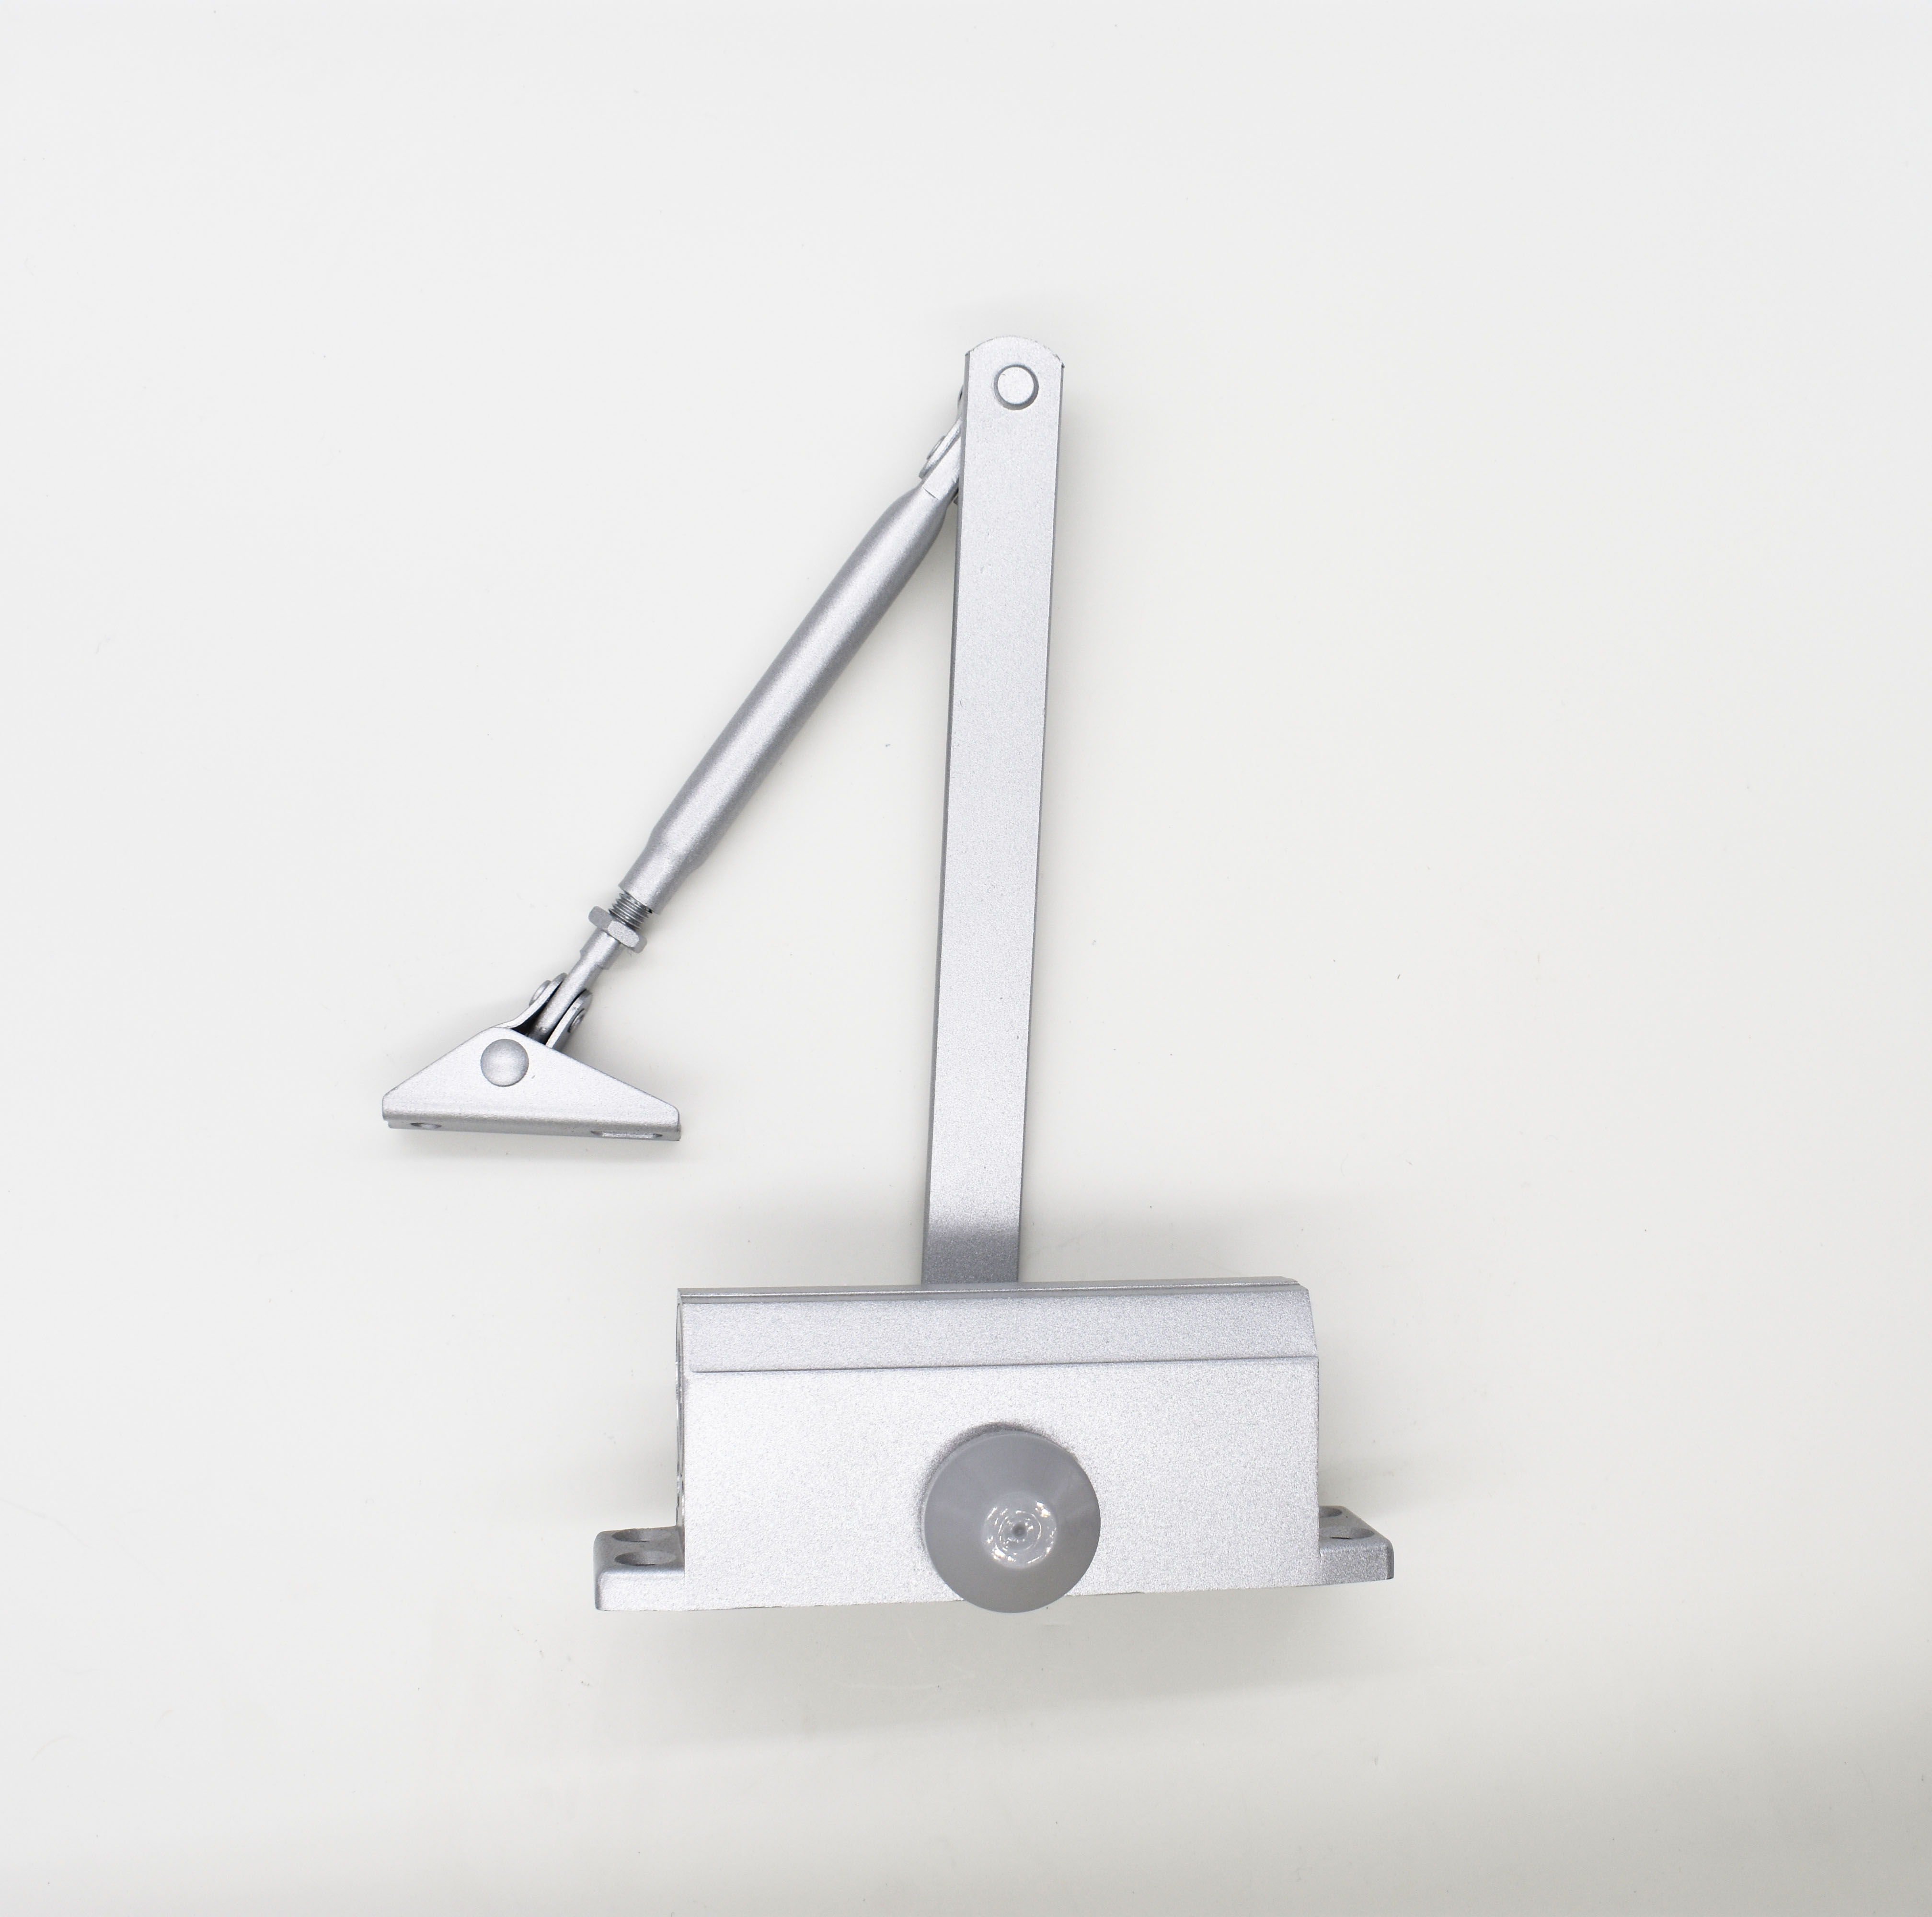 A-051 Hexagonal door closer